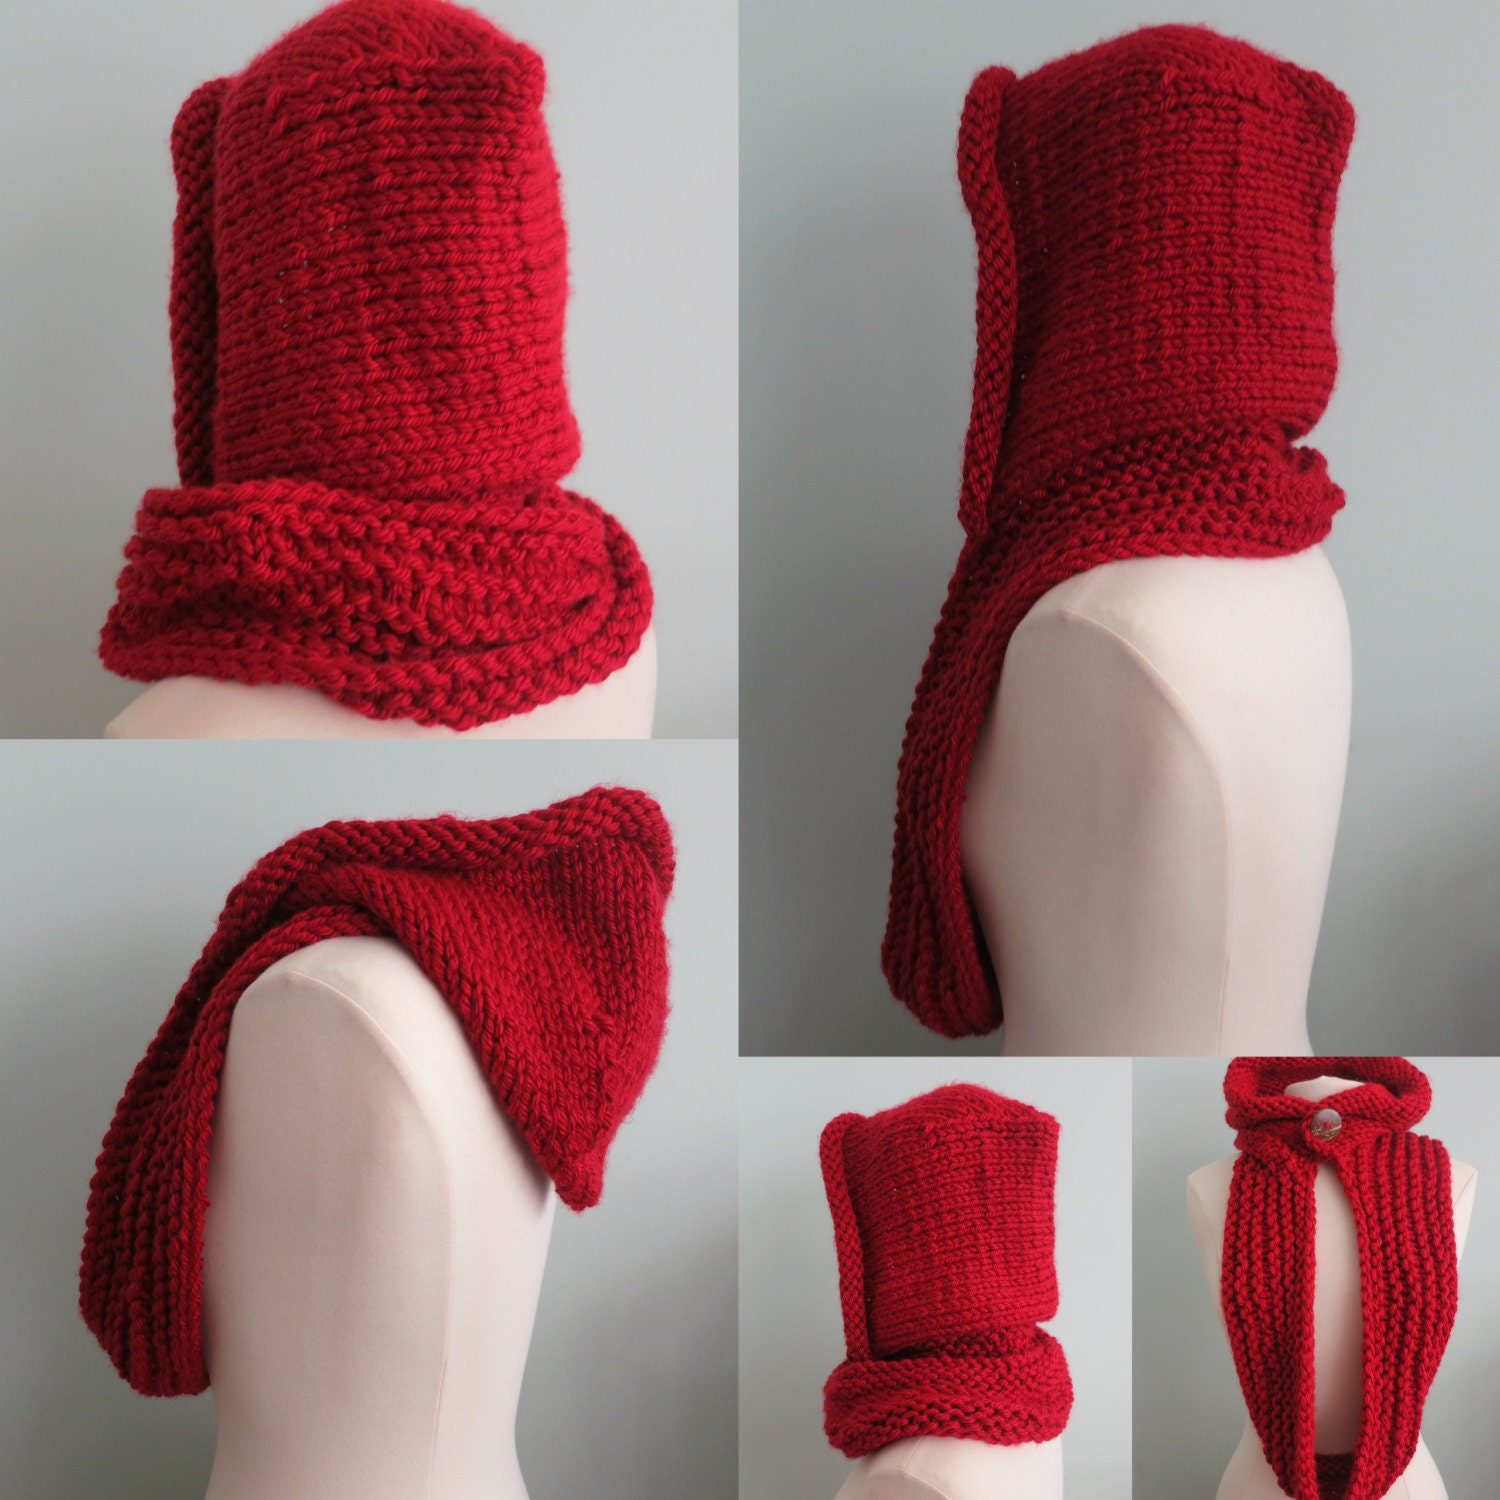 Hoodie Cowl, Knitted Hat, Winter Hat, Knitting Pattern in Super Bulky Yarn fr...